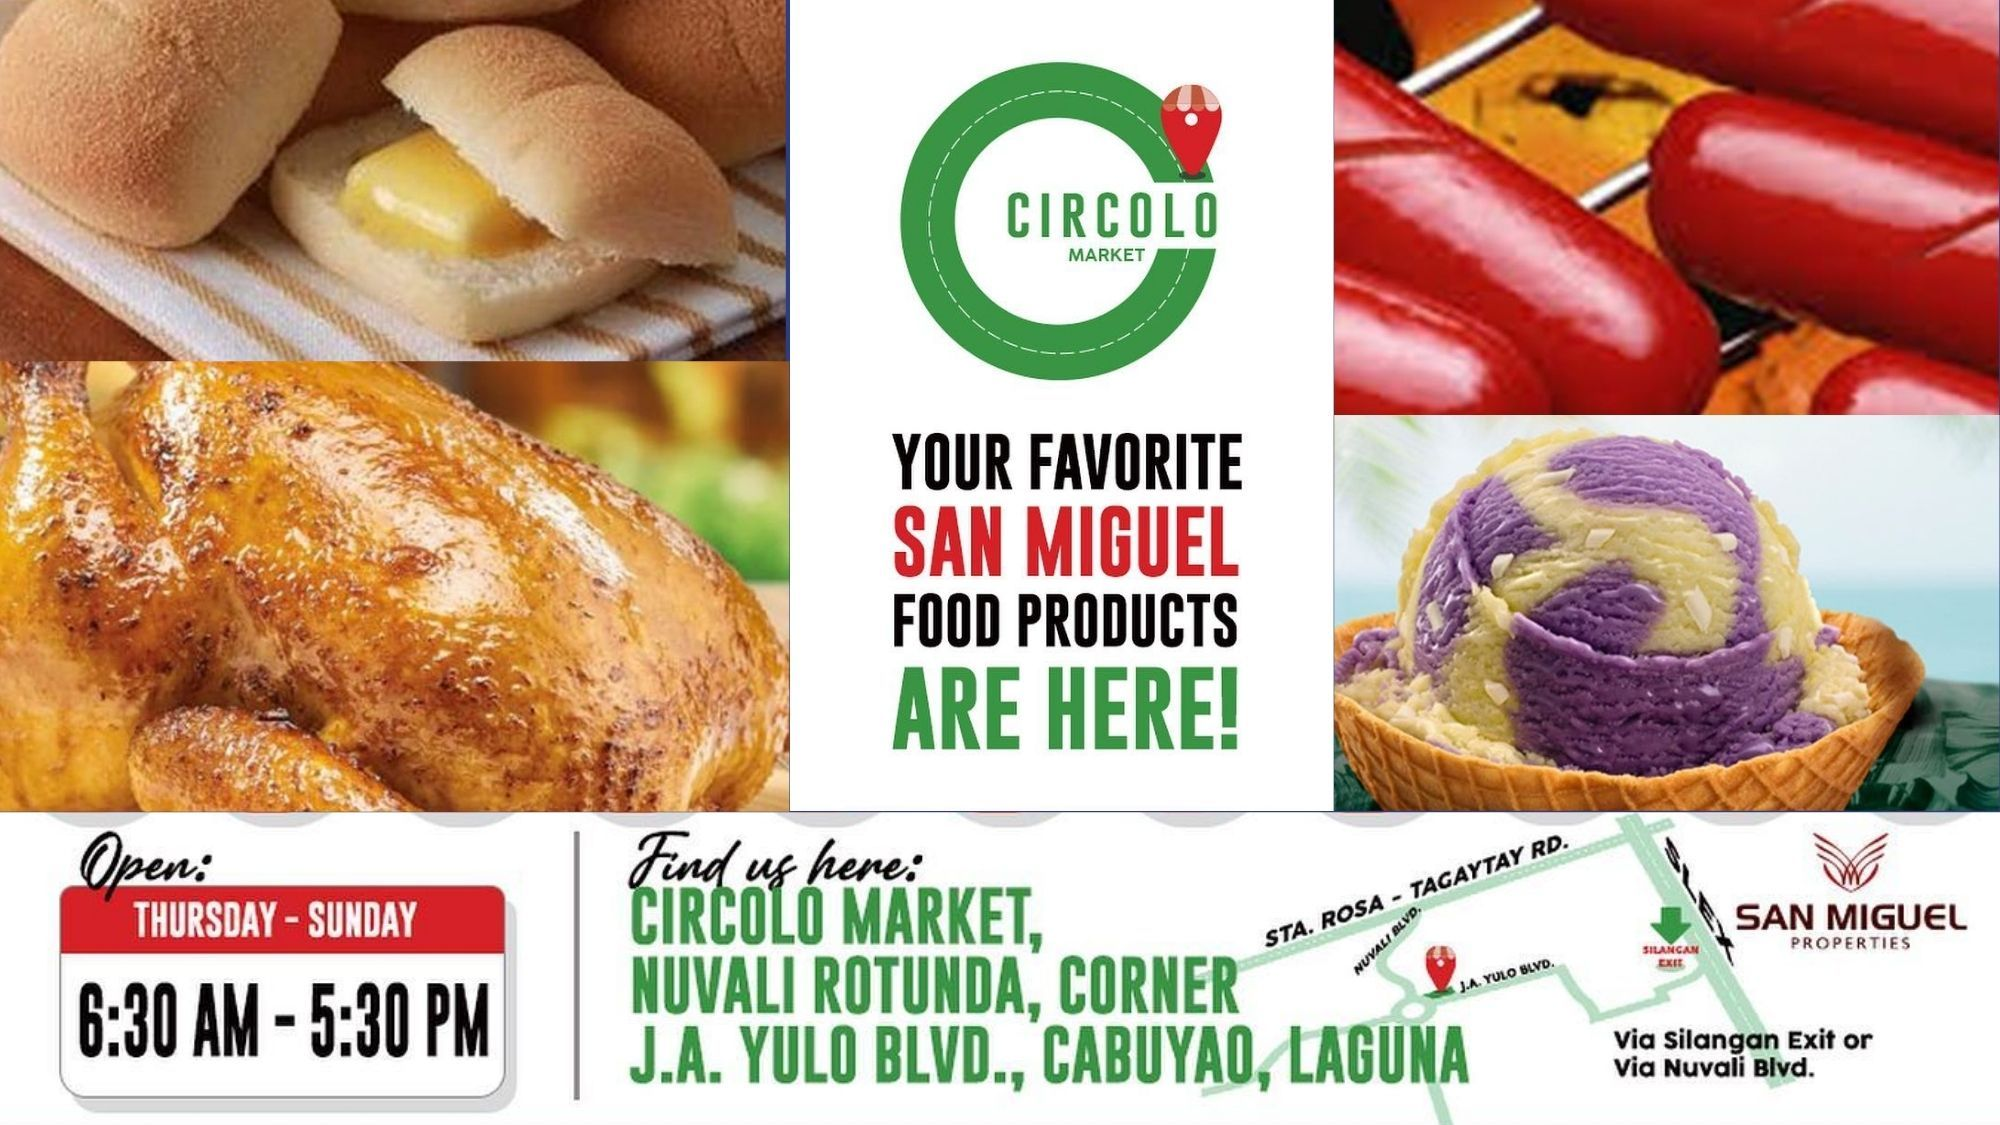 SMC opens second community market for farmers in Cabuyao photo from Circolo Market